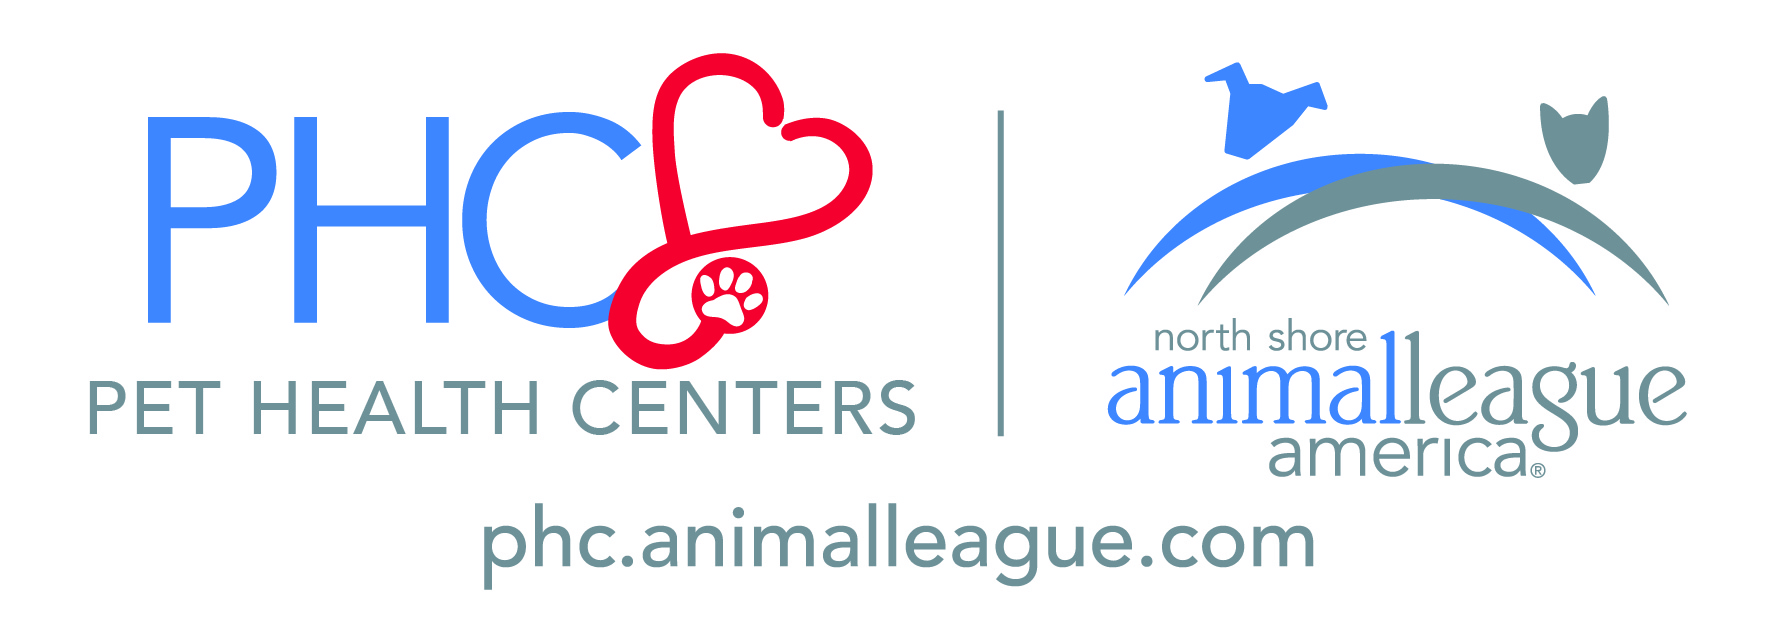 Watch the job video below to learn more about the career opening Video Not Found at North Shore Animal League America  in